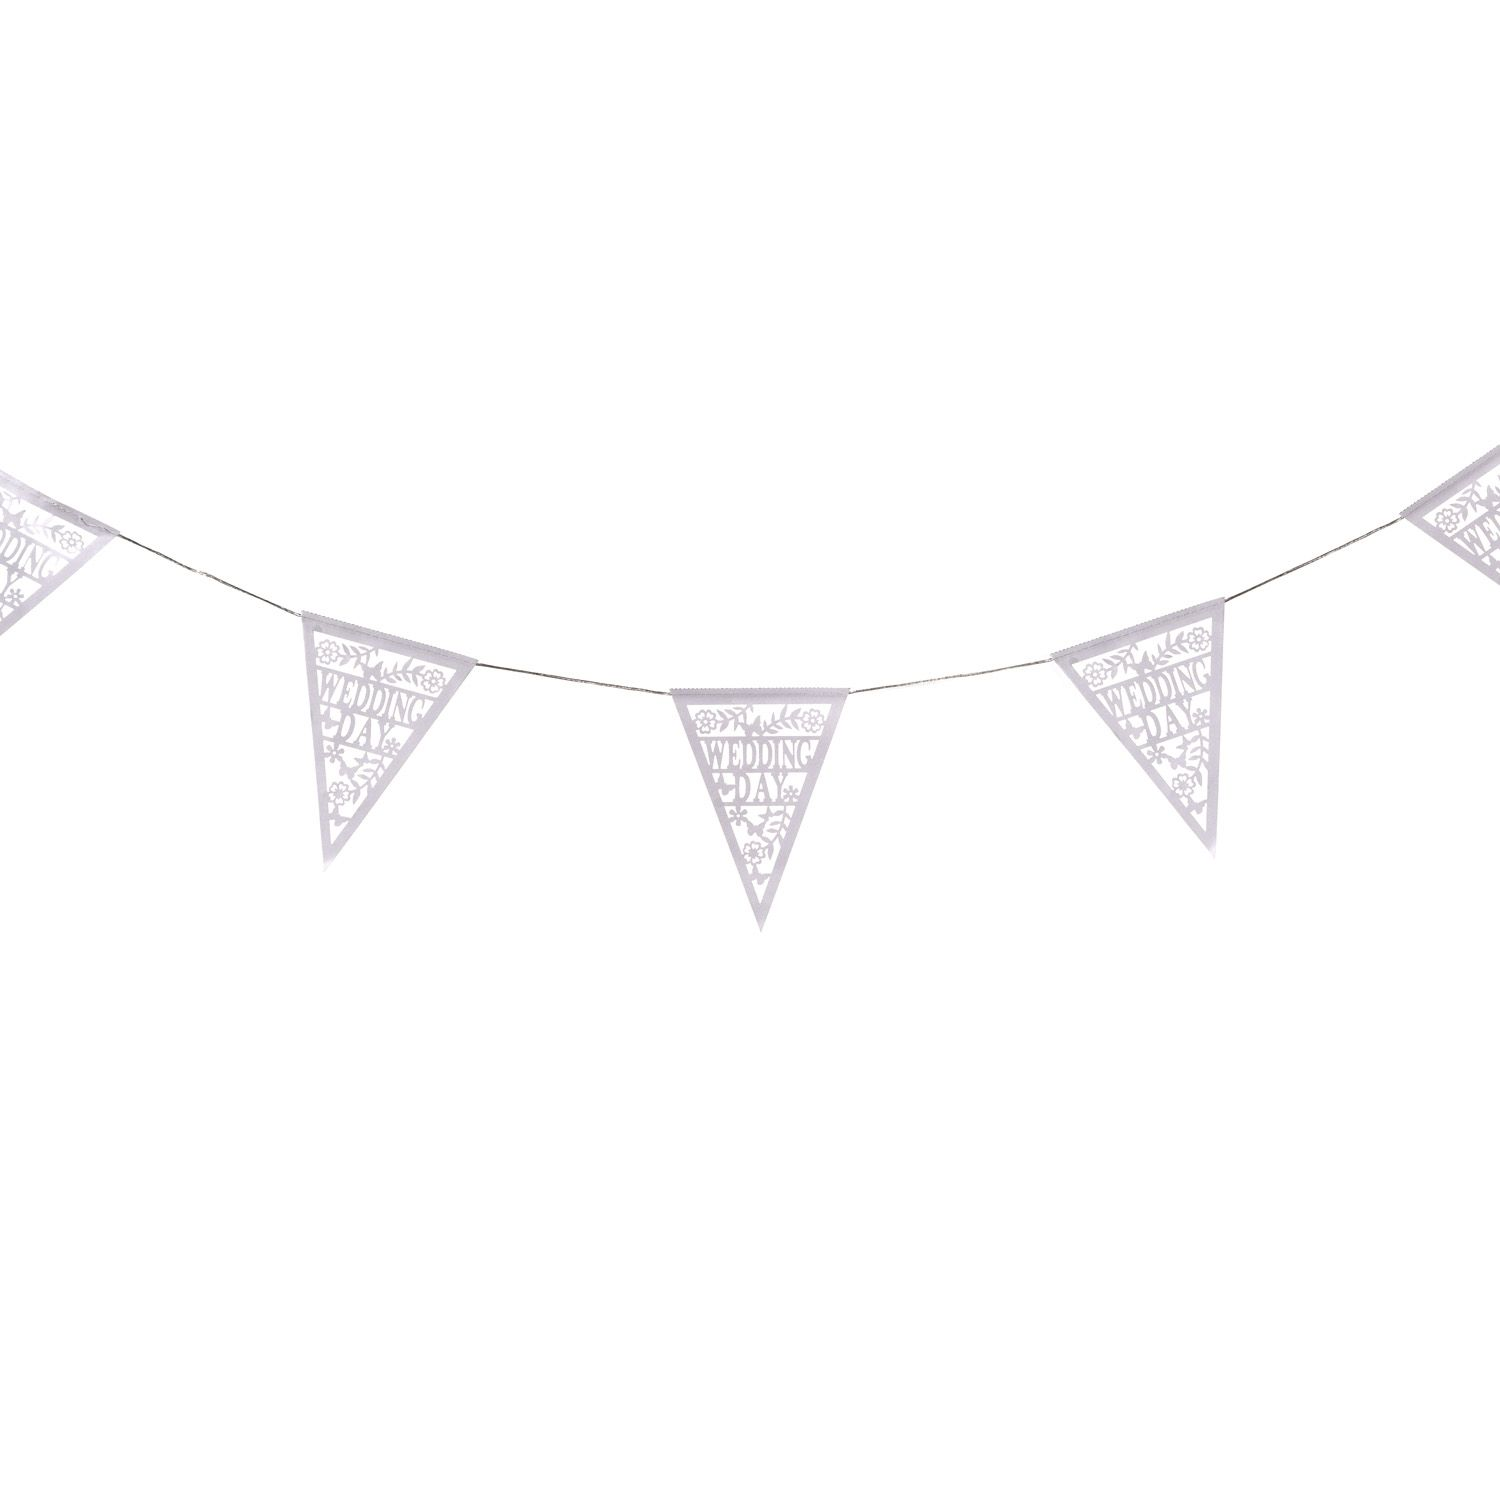 This cut out wedding bunting is the perfect way to decorate your big event as it can be hung wherever you want it. The font alongside numerous images will look stunning placed around your venue. This is a cheap and easy way to add some wedding glamour to your special day without the mess and fuss! Height Width Depth 17cm 23.5cm -cm